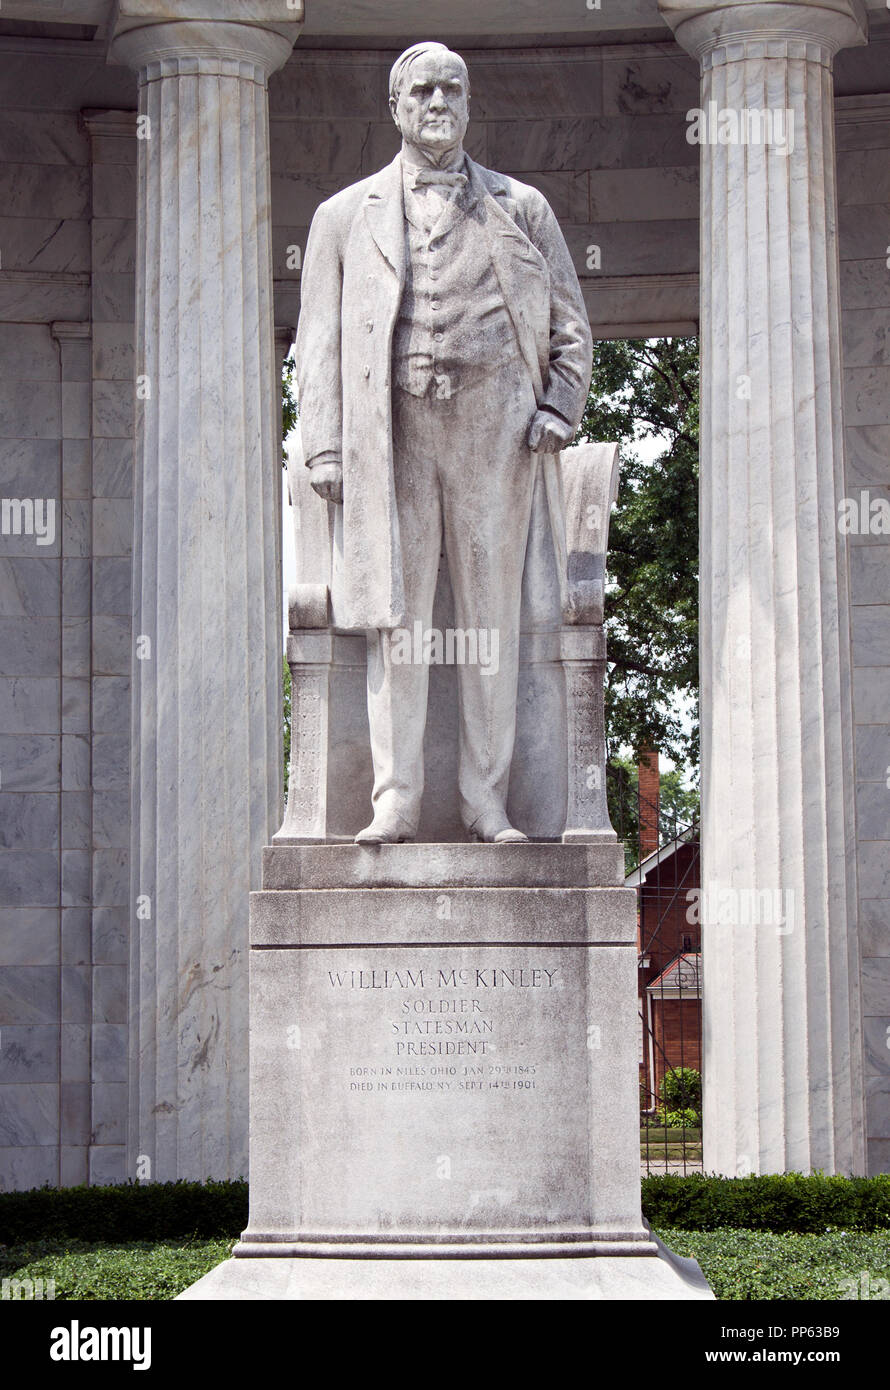 President William McKinley statue in his hometown of Niles, Ohio - Stock Image